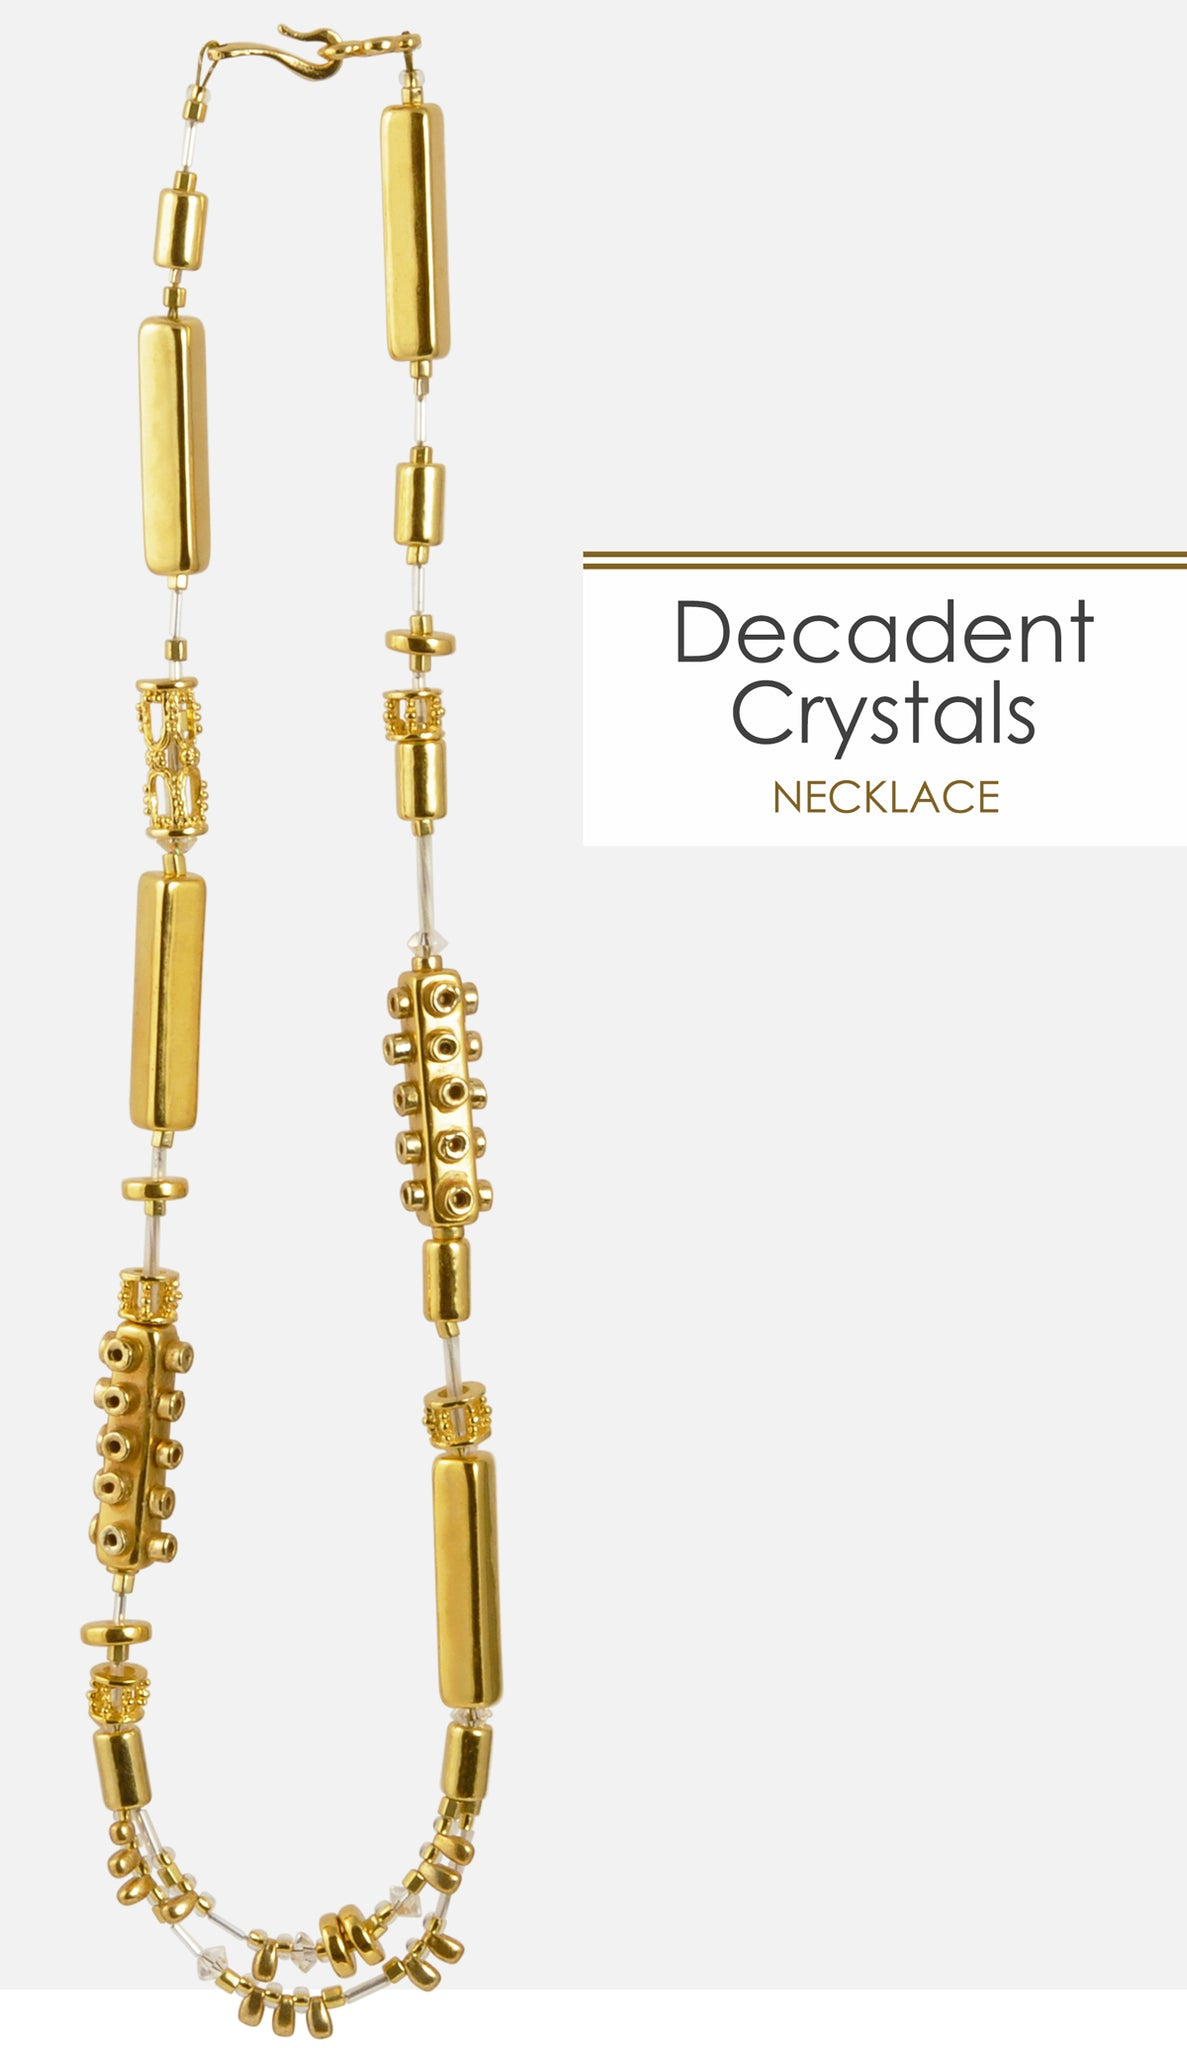 Decadent Crystals Necklace Tamara Scott Designs